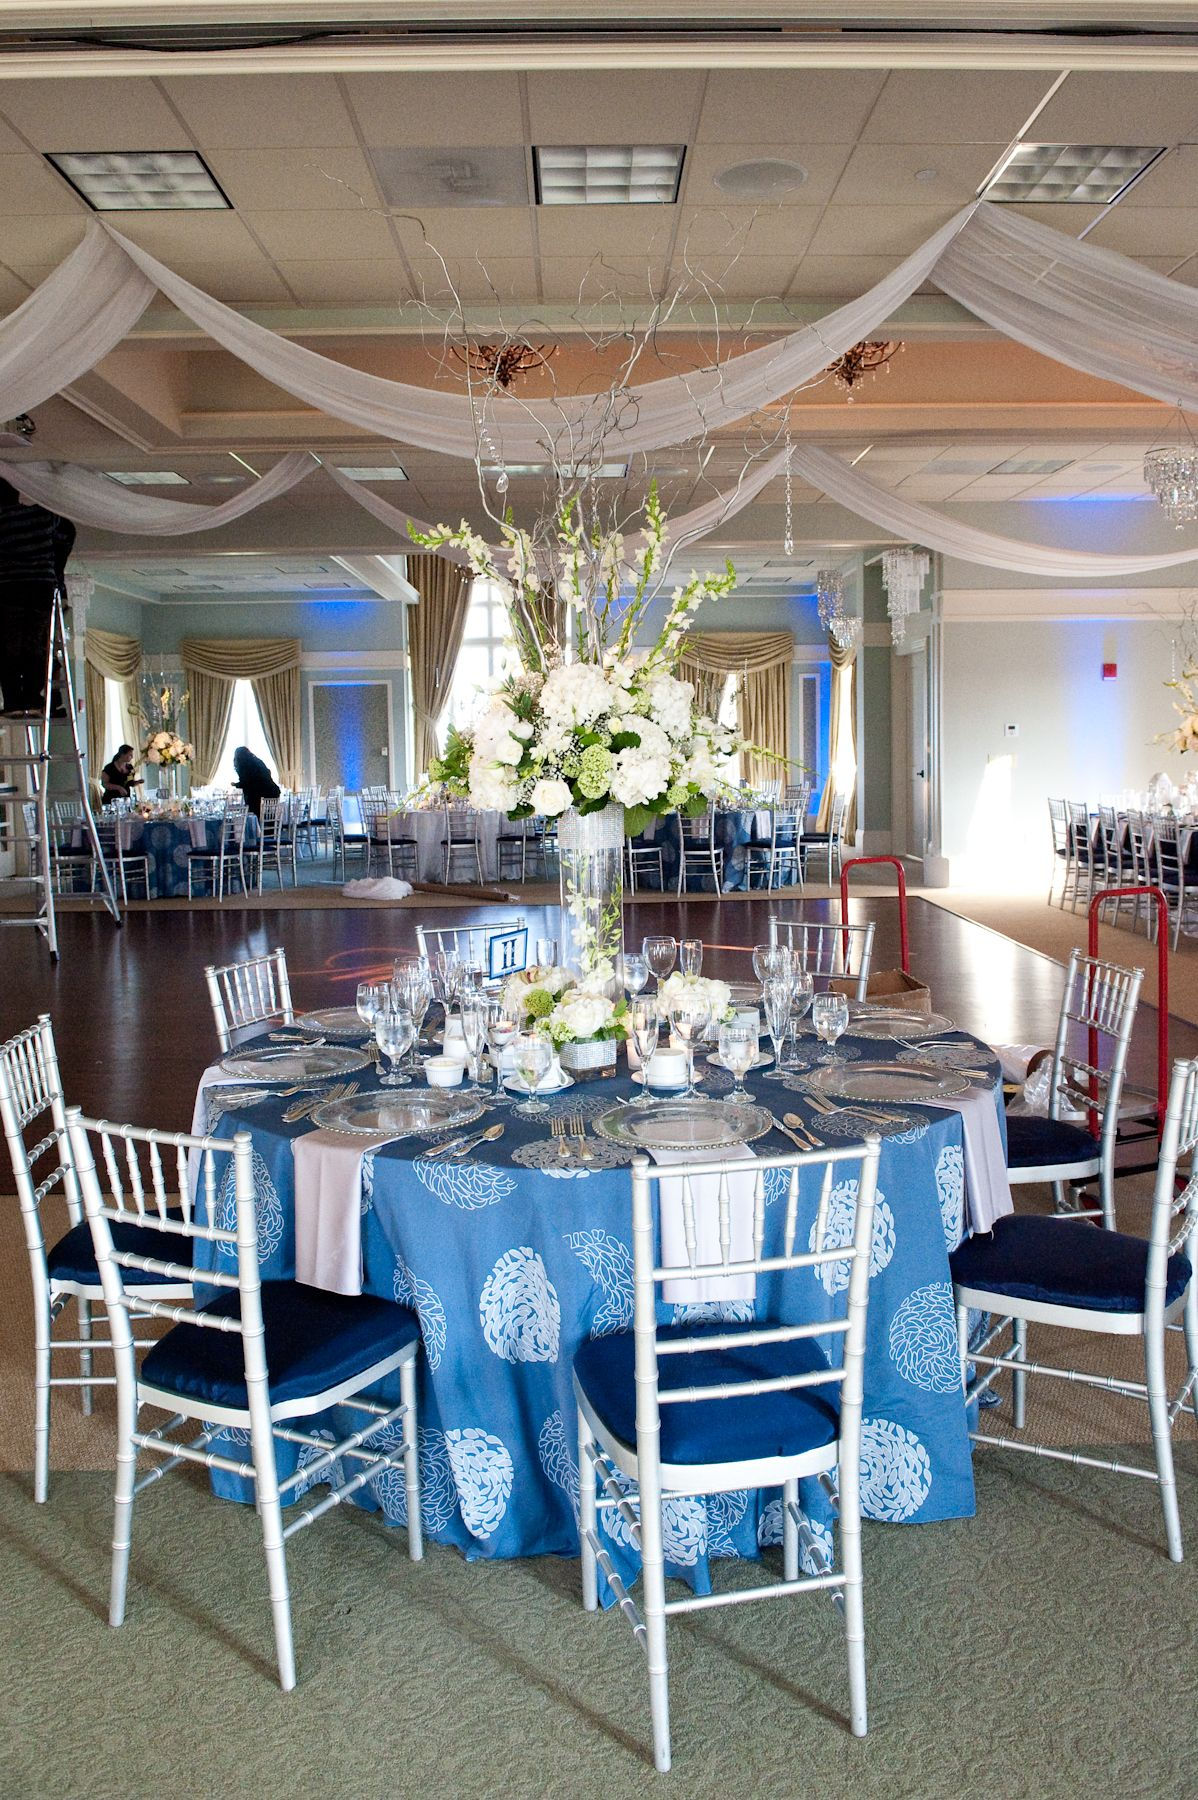 Pin By Blue Heron Gifts Floral On Wedding Venues In Maryland Wedding Reception Garden Estate Wedding Venues